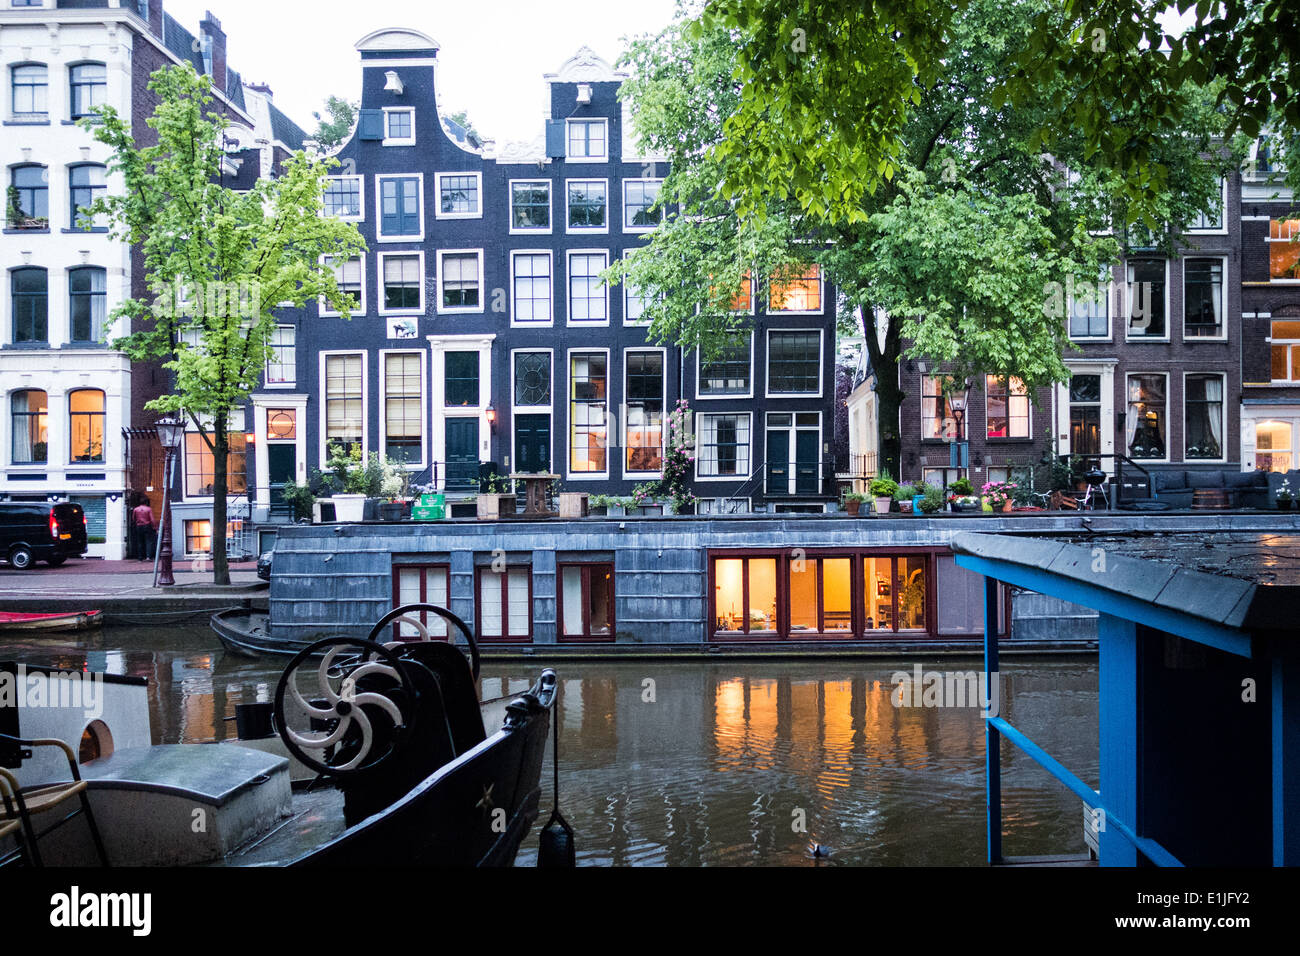 Canal with houseboats in Amsterdam, The Netherlands - Stock Image